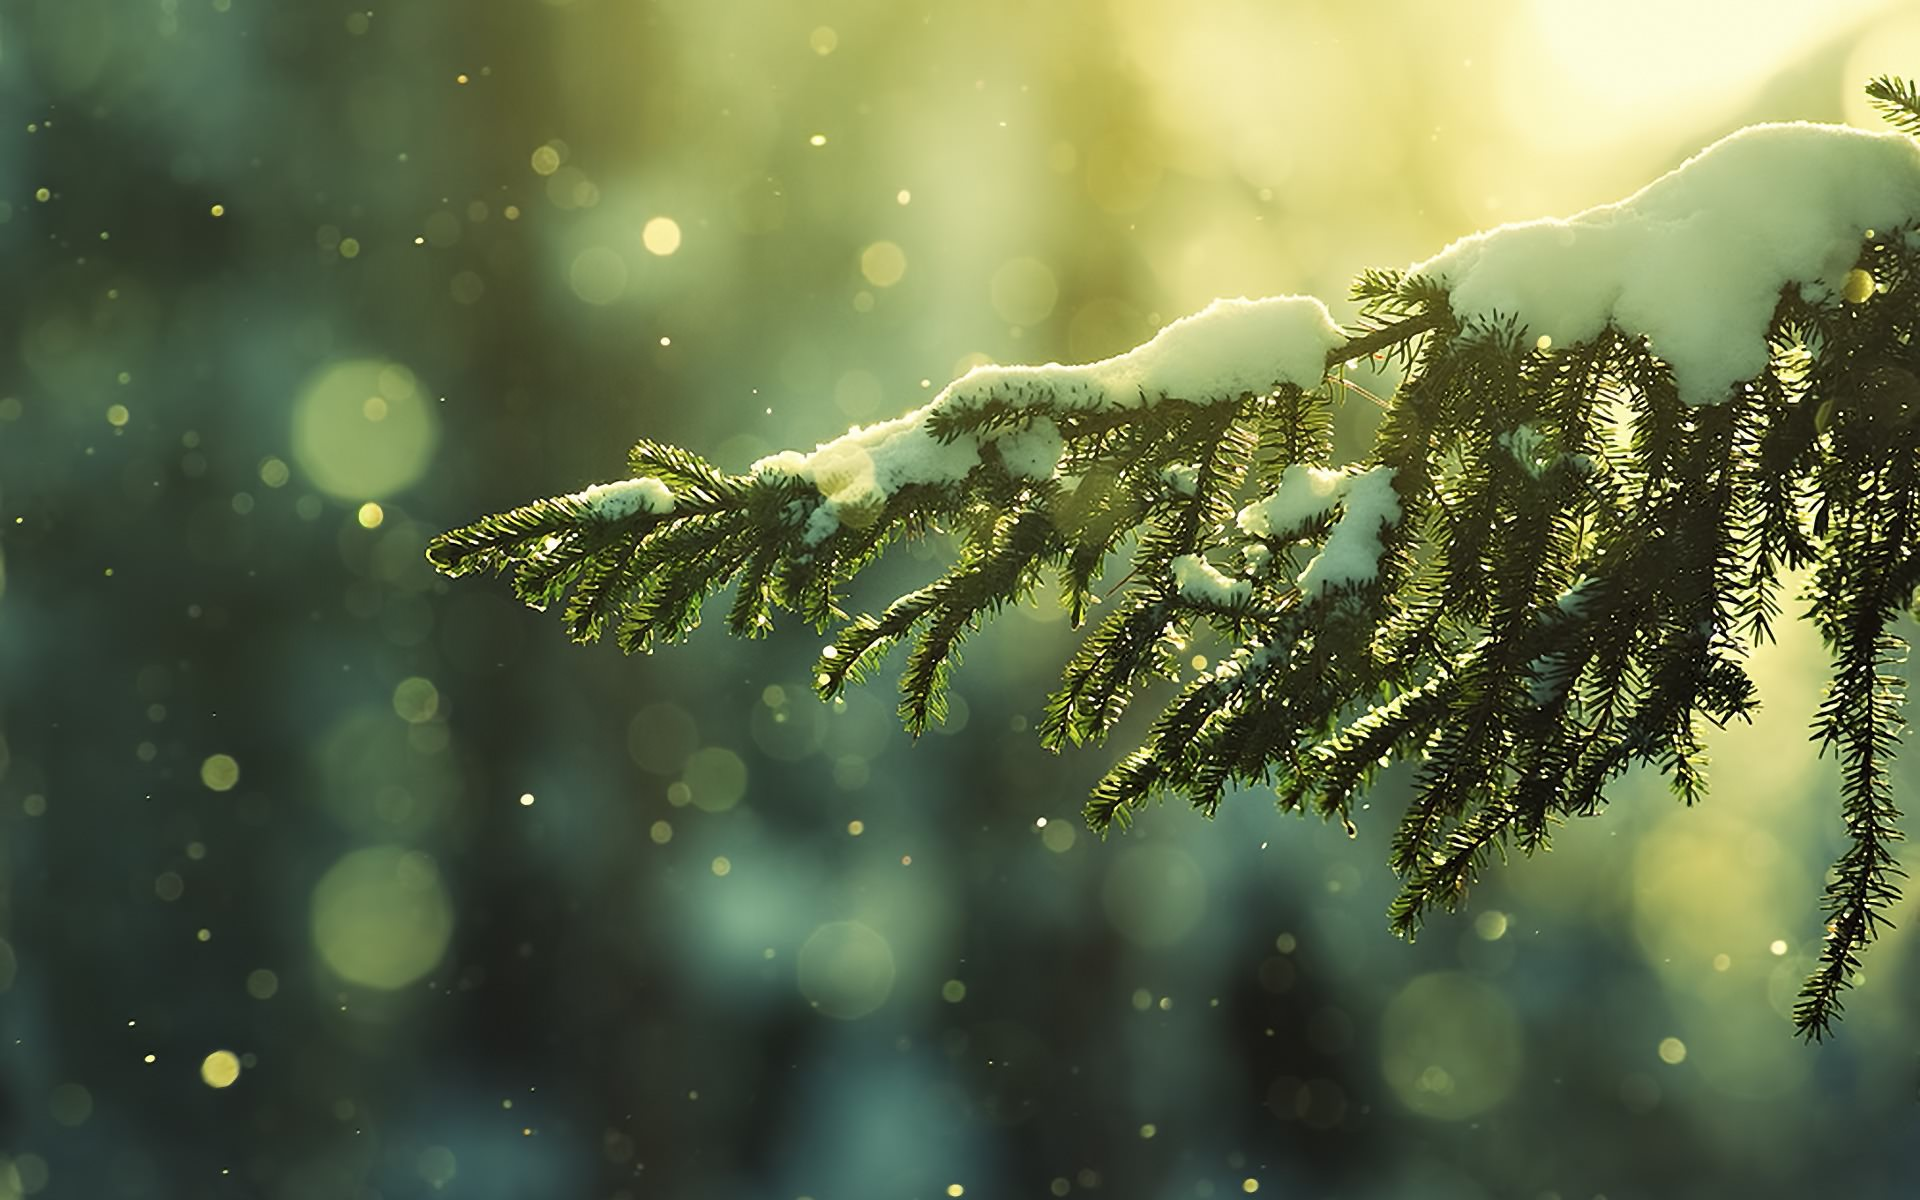 Frozen Tree Background